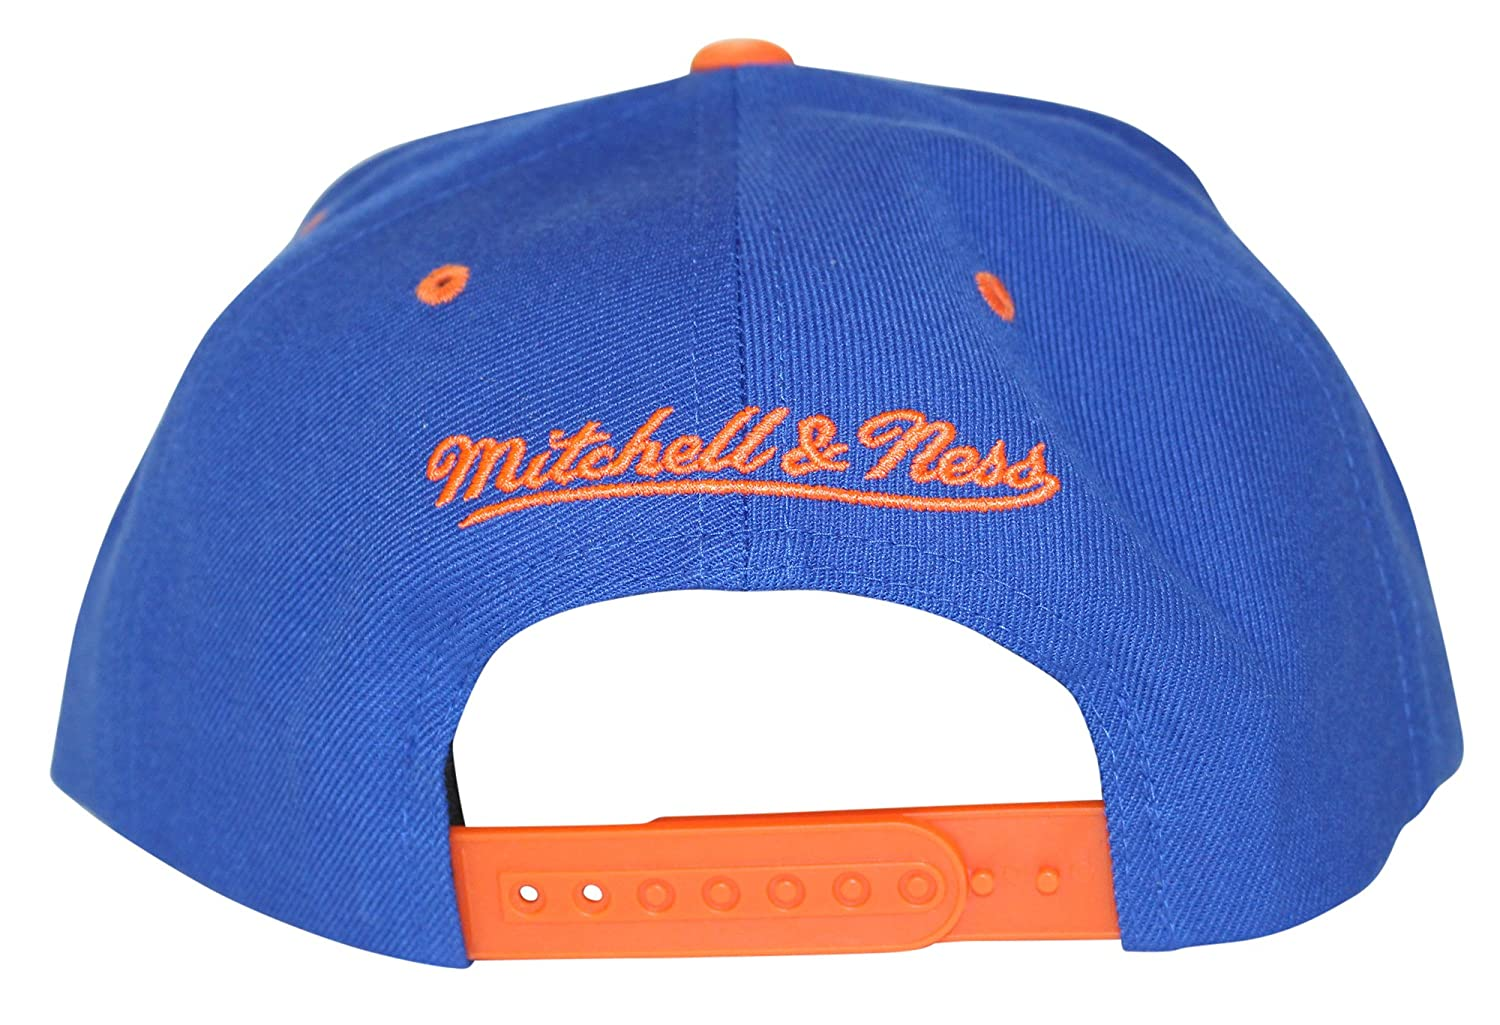 separation shoes d47f1 fb394 Mitchell   Ness Men s NBA XL Rubber Weld Logo Snapback Cap, Golden State  Warriors at Amazon Men s Clothing store